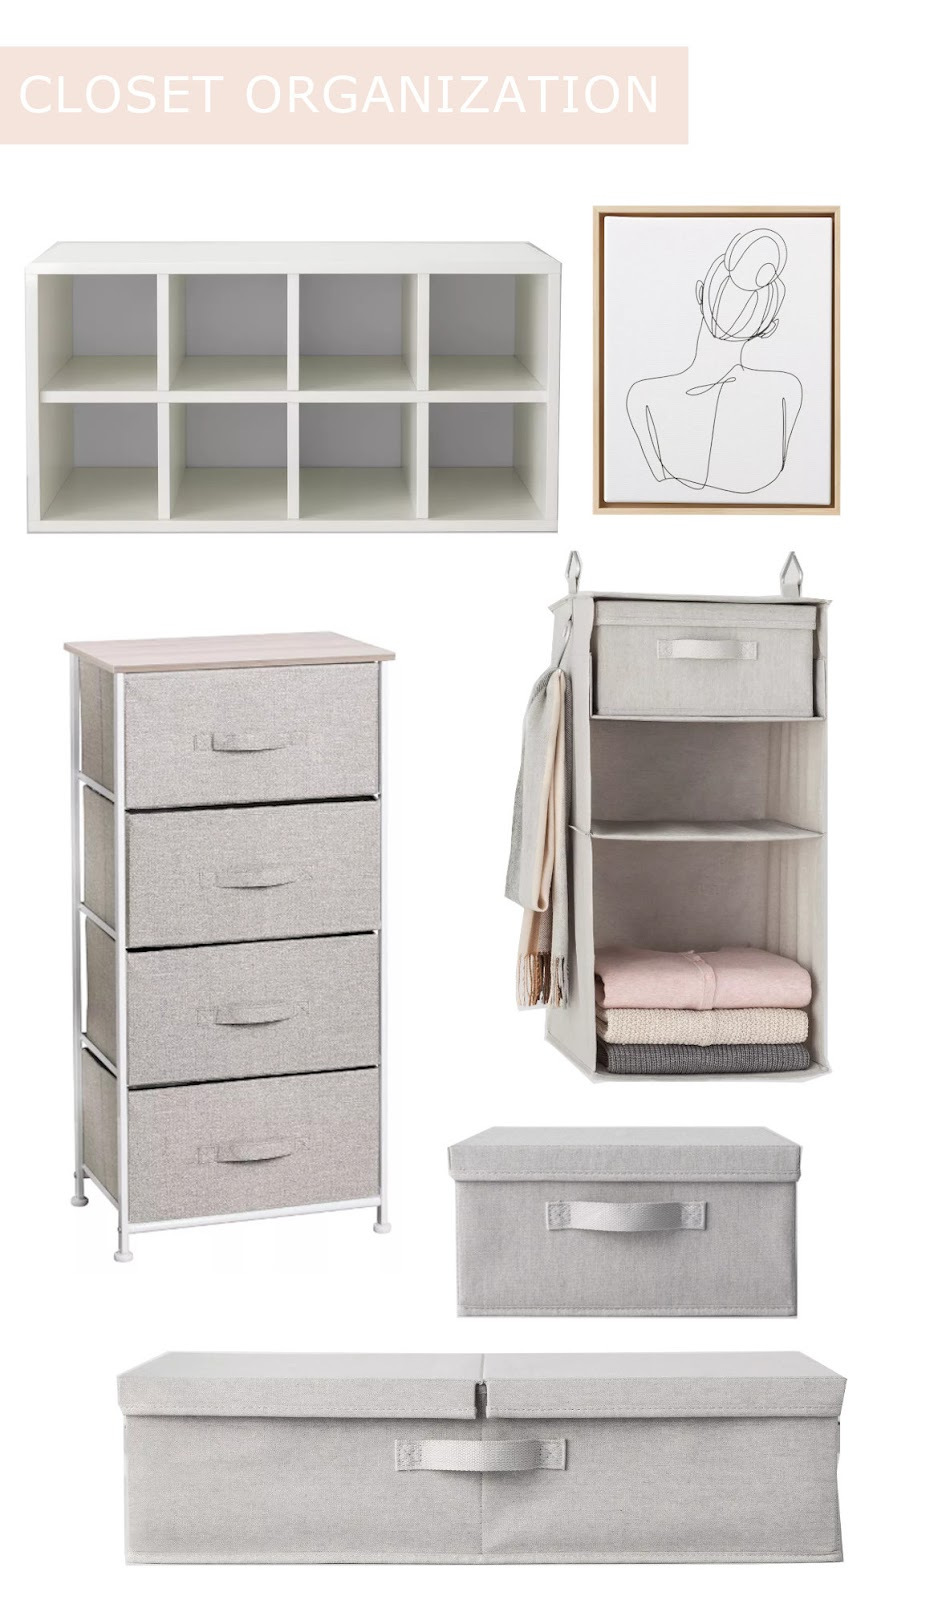 Products I used to organize my closet